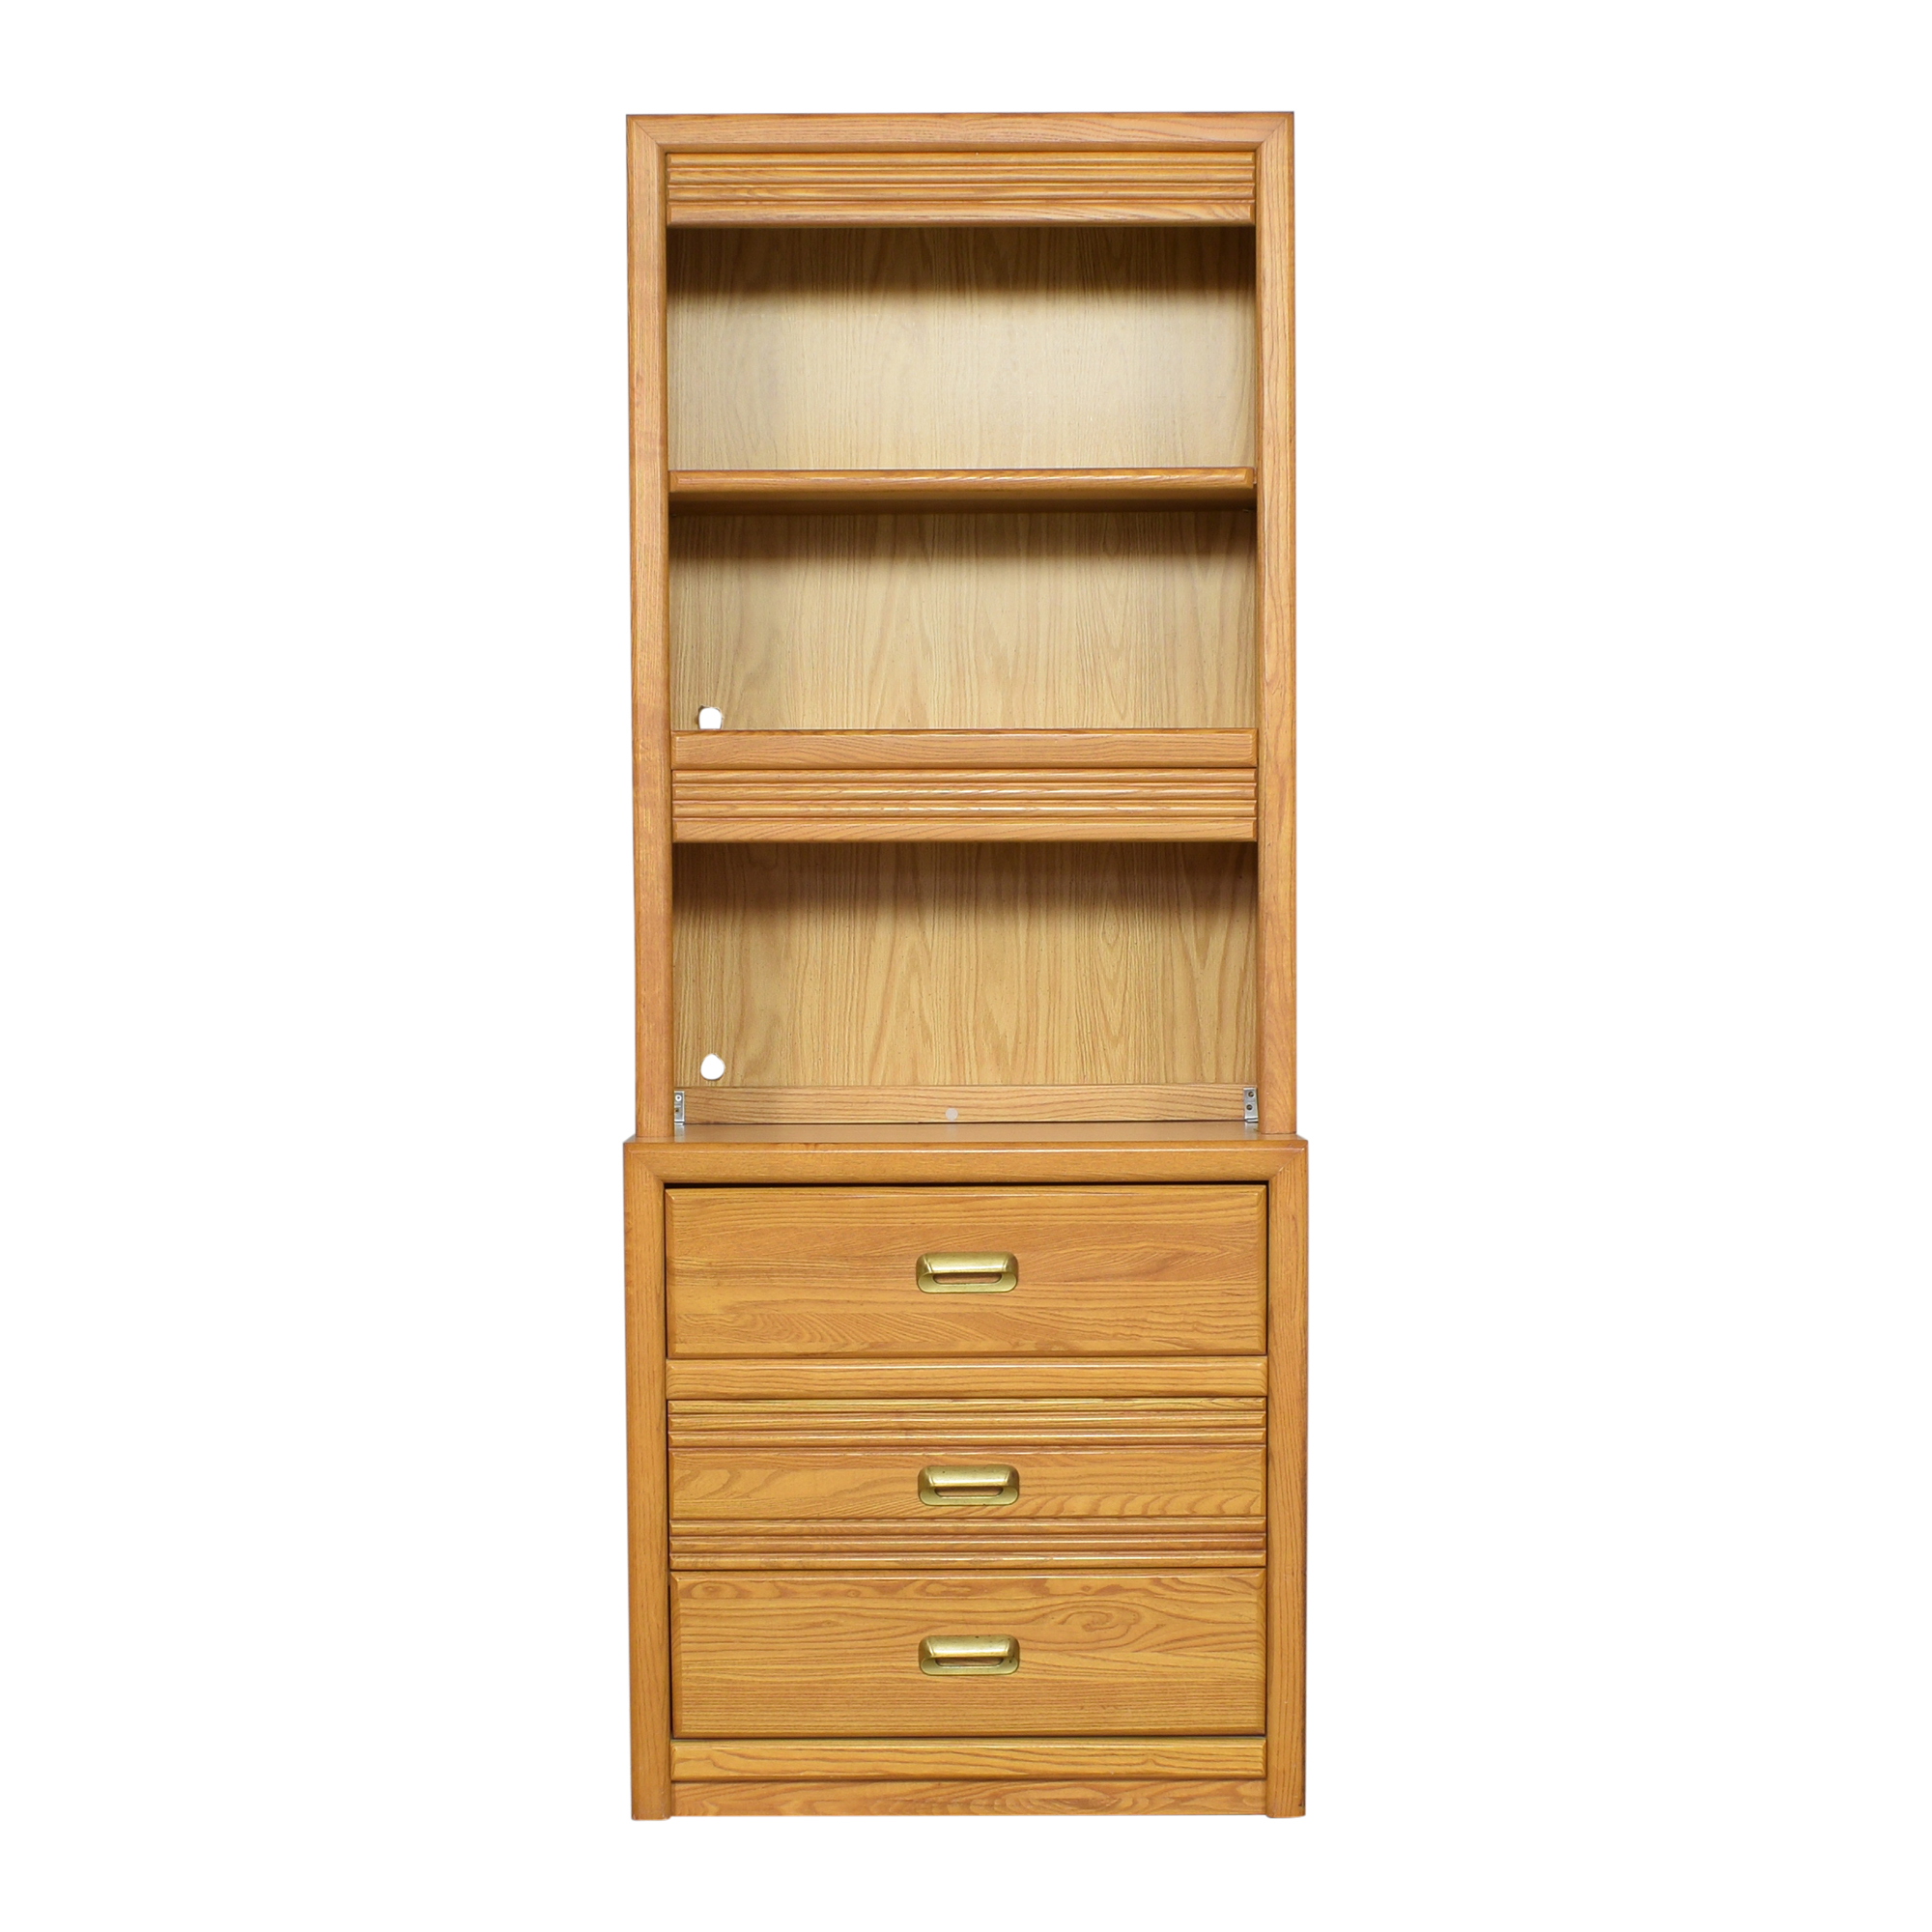 Bookcase with Three Drawers / Bookcases & Shelving